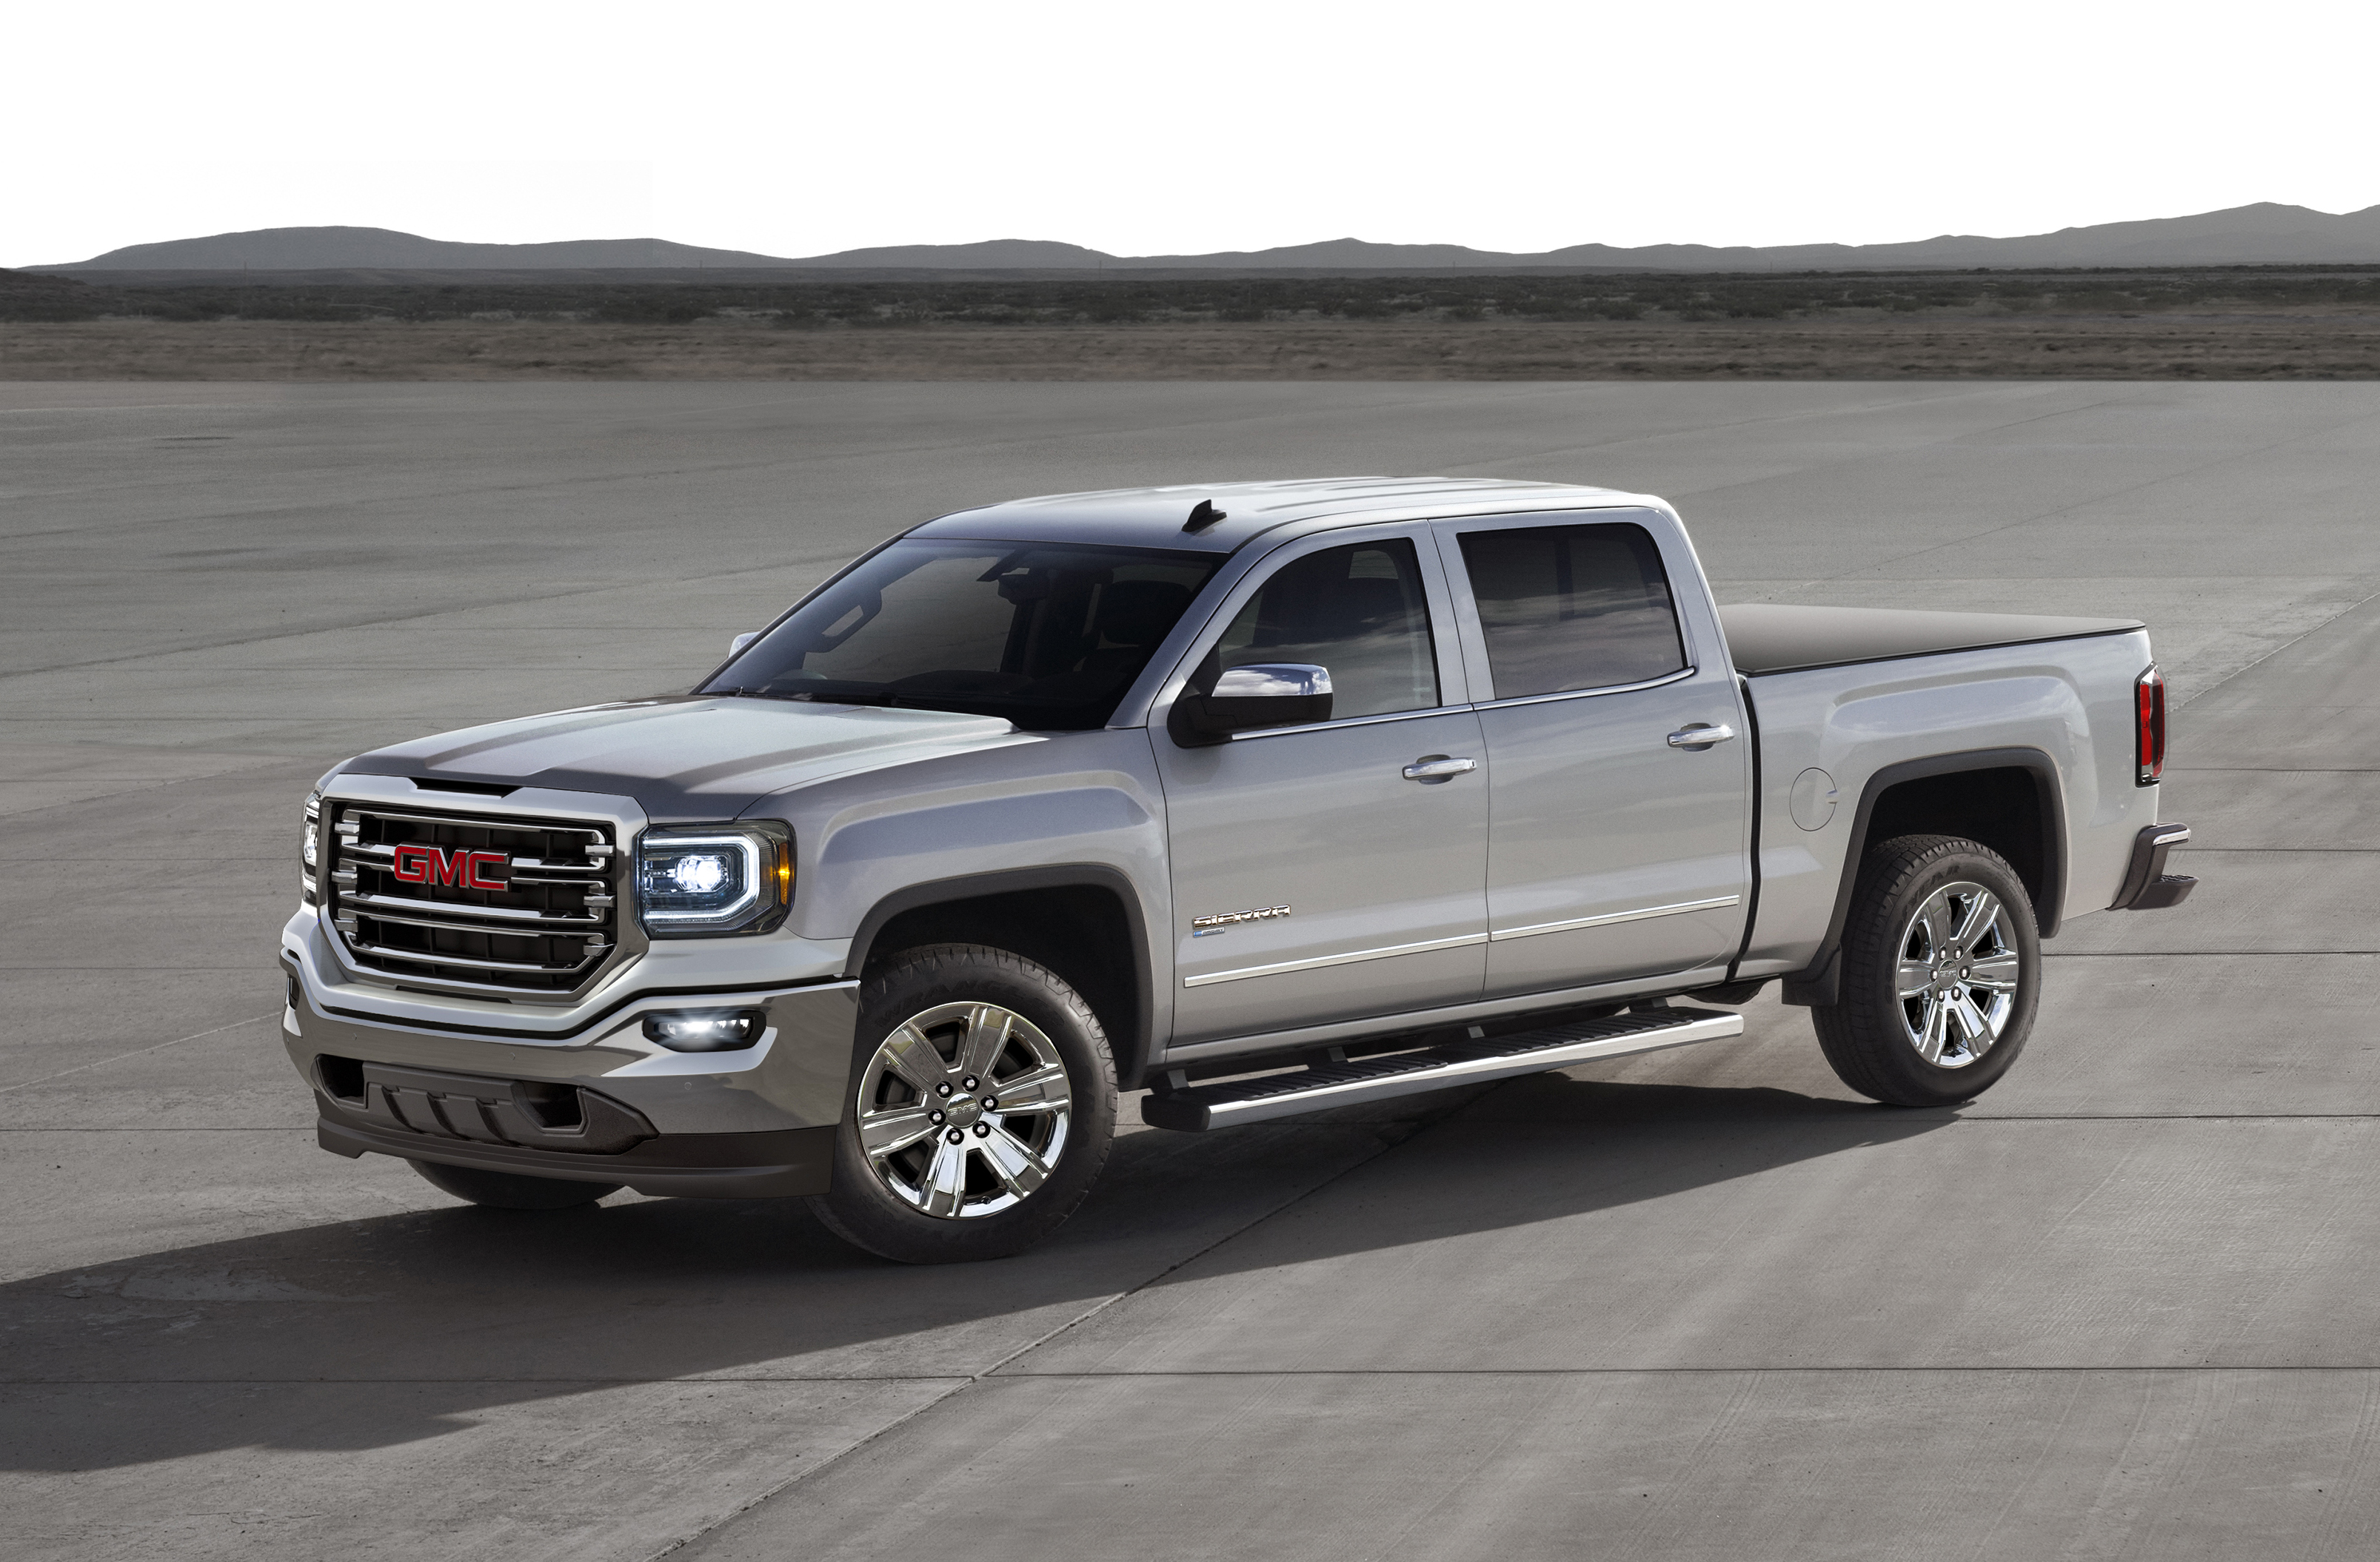 2016 chevrolet silverado eassist hybrid and gmc sierra eassist hybrid launched autoevolution. Black Bedroom Furniture Sets. Home Design Ideas